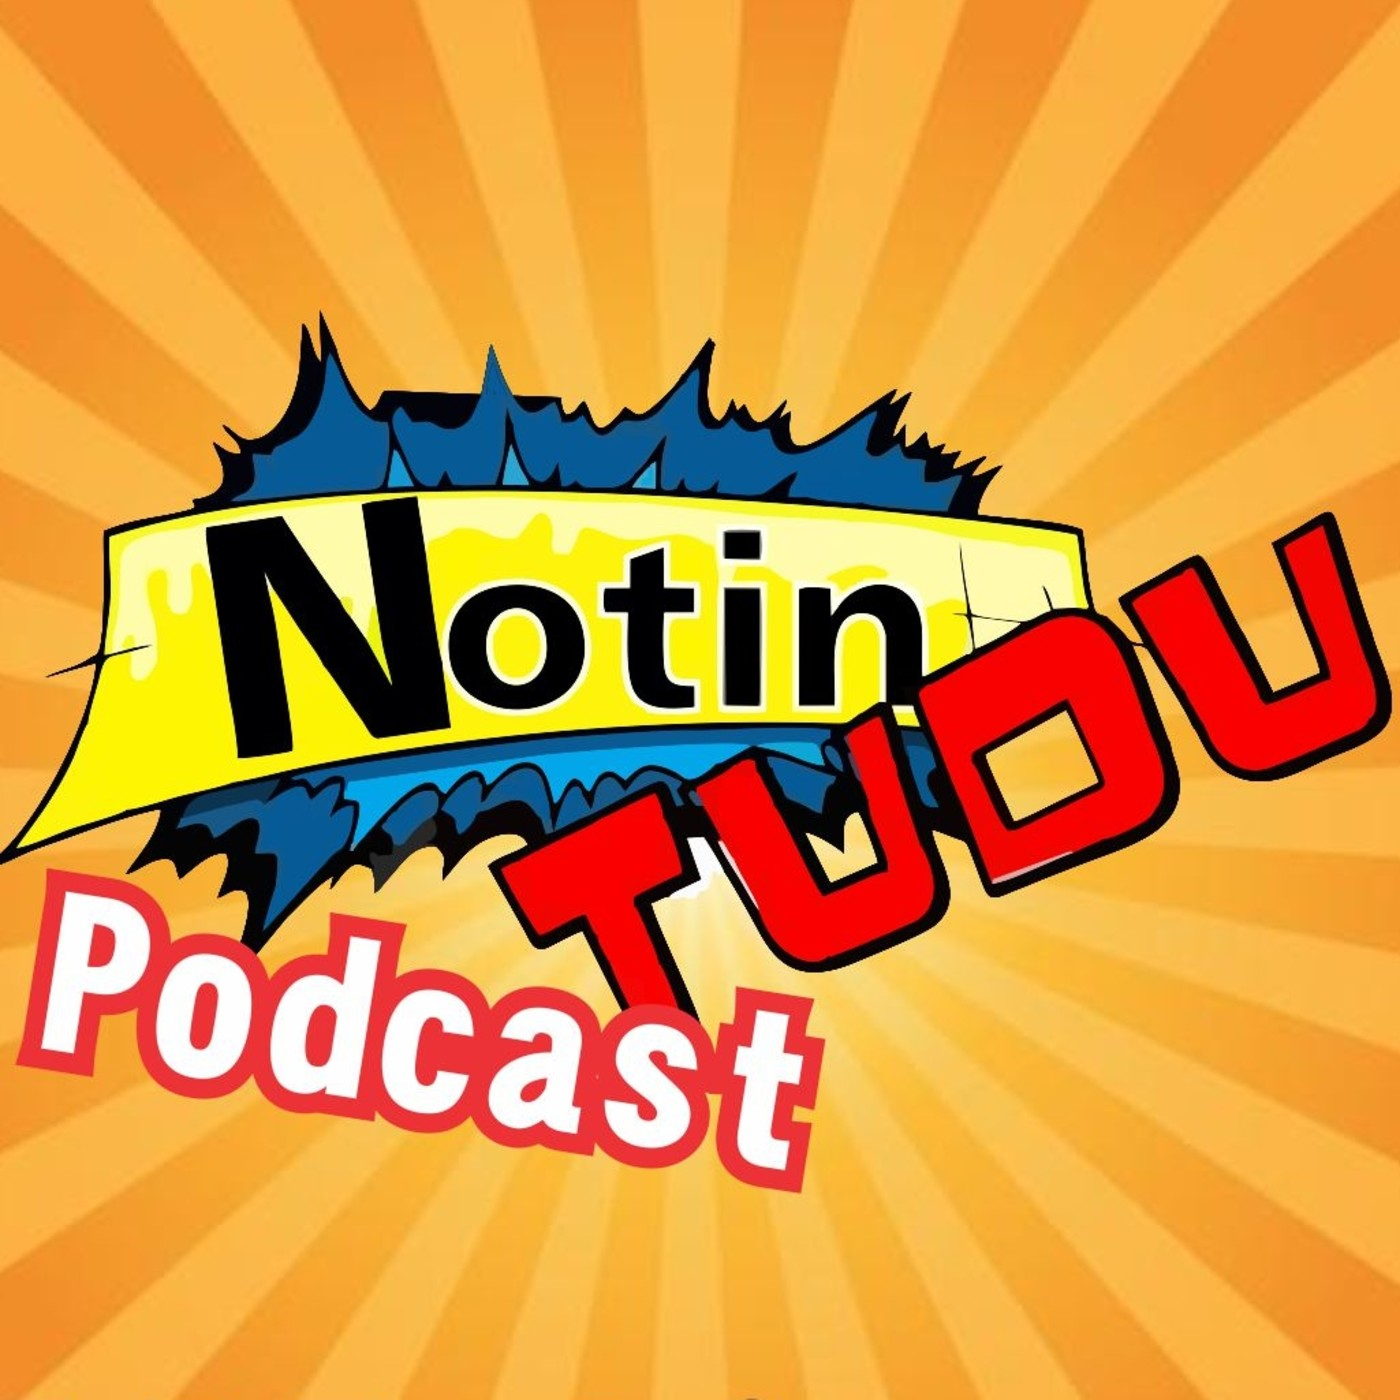 NotinTUDU Showcast #11 Productos Chinos en Realidad son Malos...?